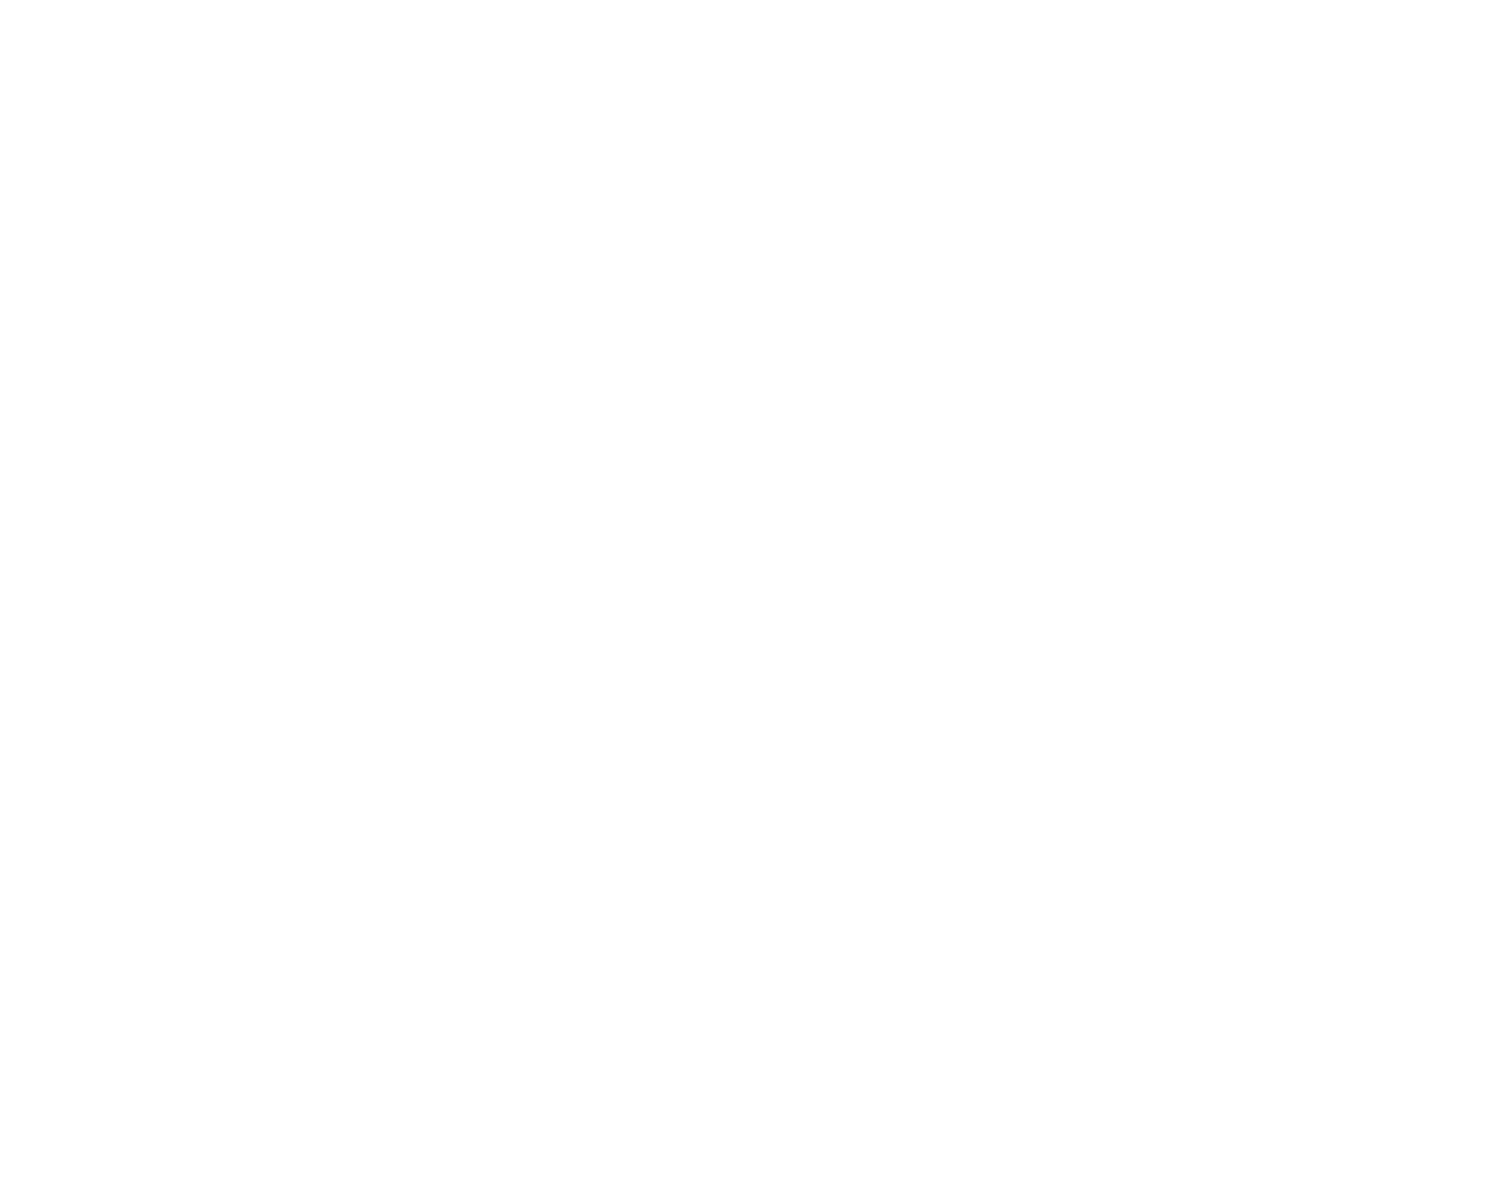 Northwest PANDAS/PANS Network